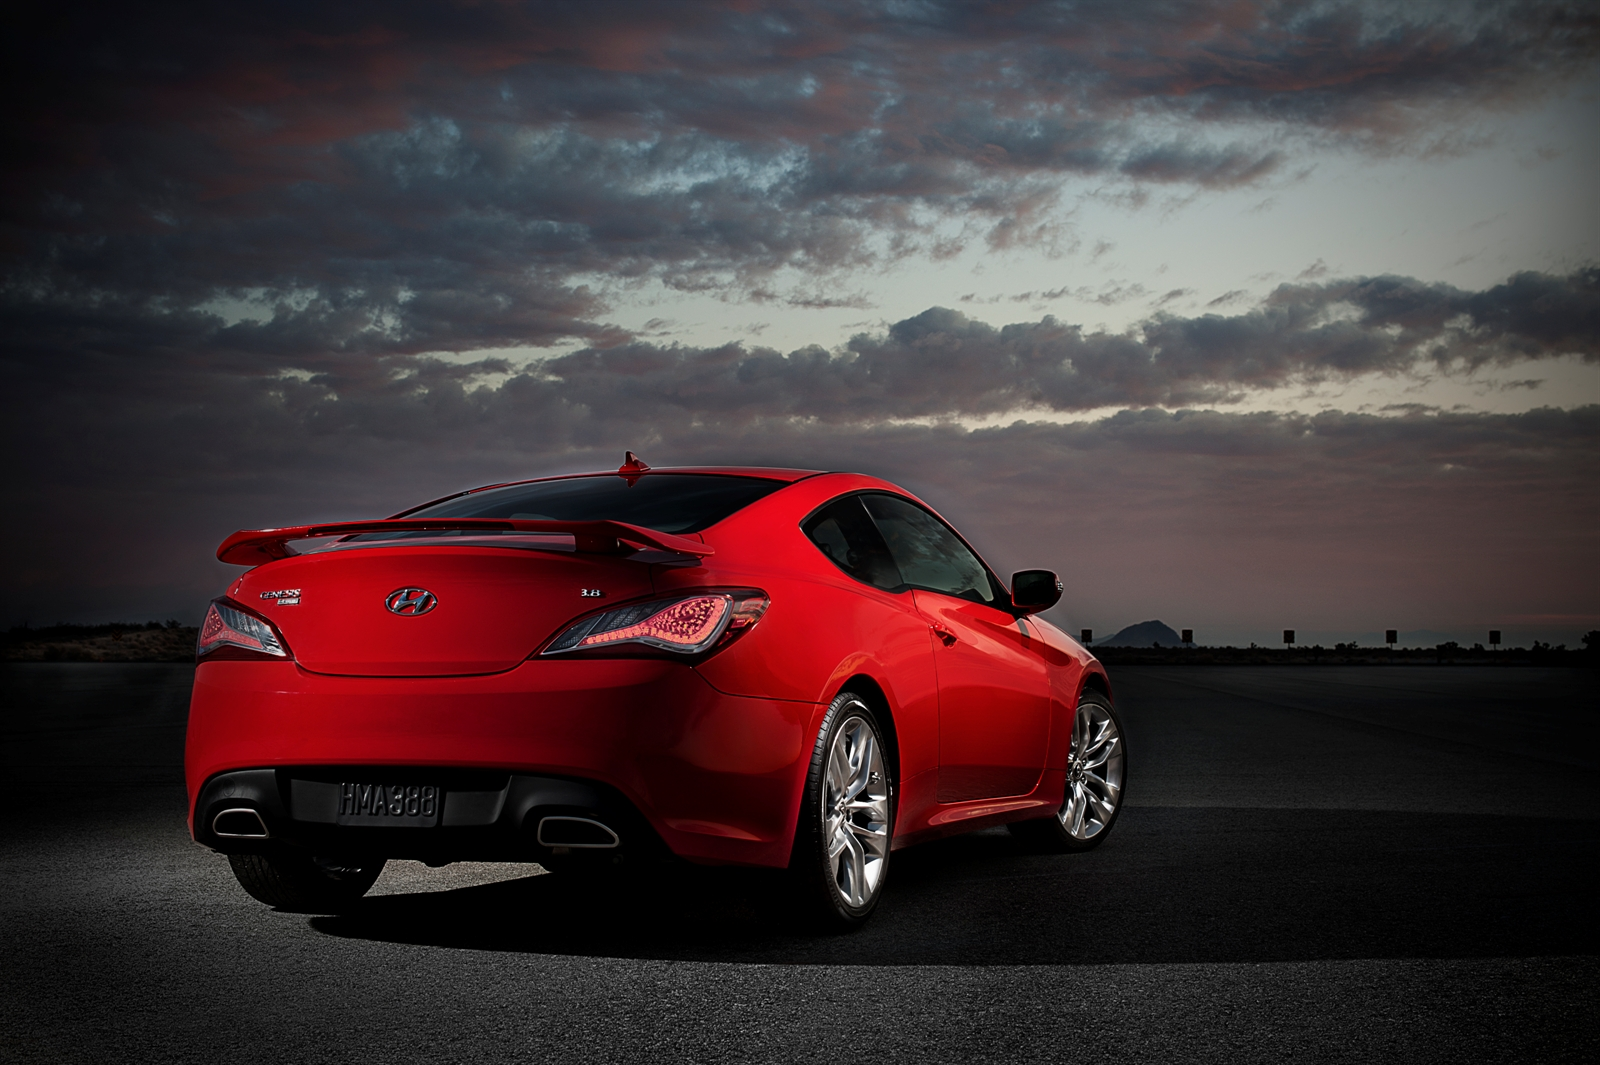 2013 hyundai genesis coupe 3 8 track new car reviews grassroots motorsports - Hyundai genesis coupe motor ...